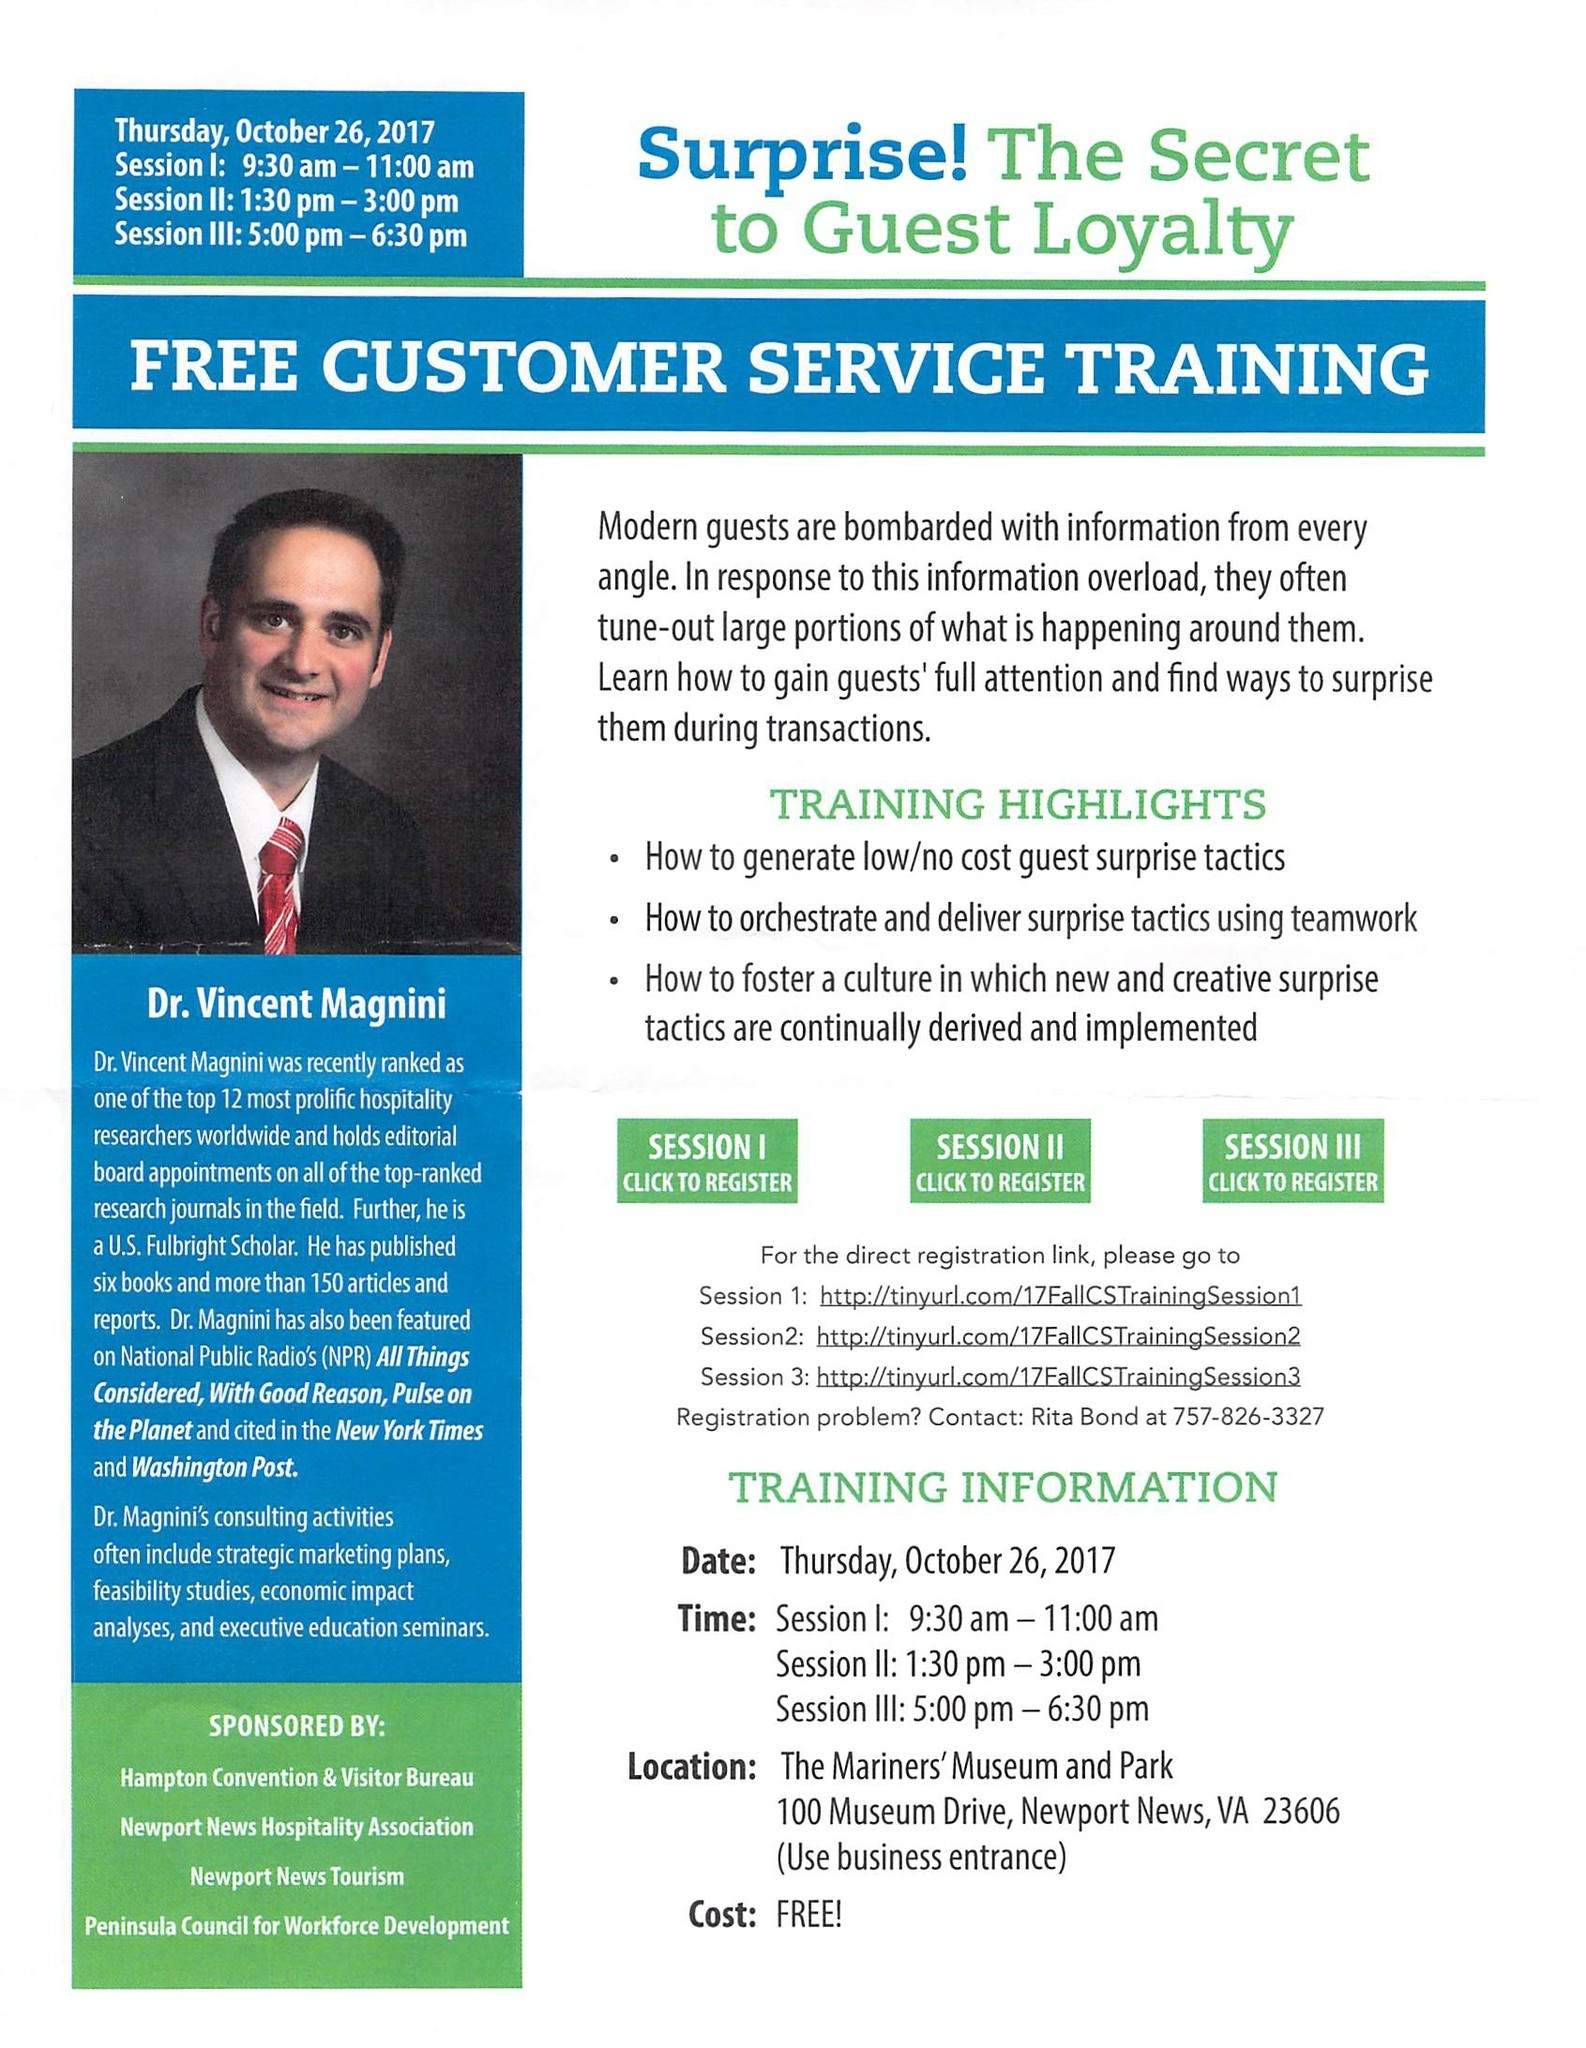 Free Customer Service Training To Hospitality Industry